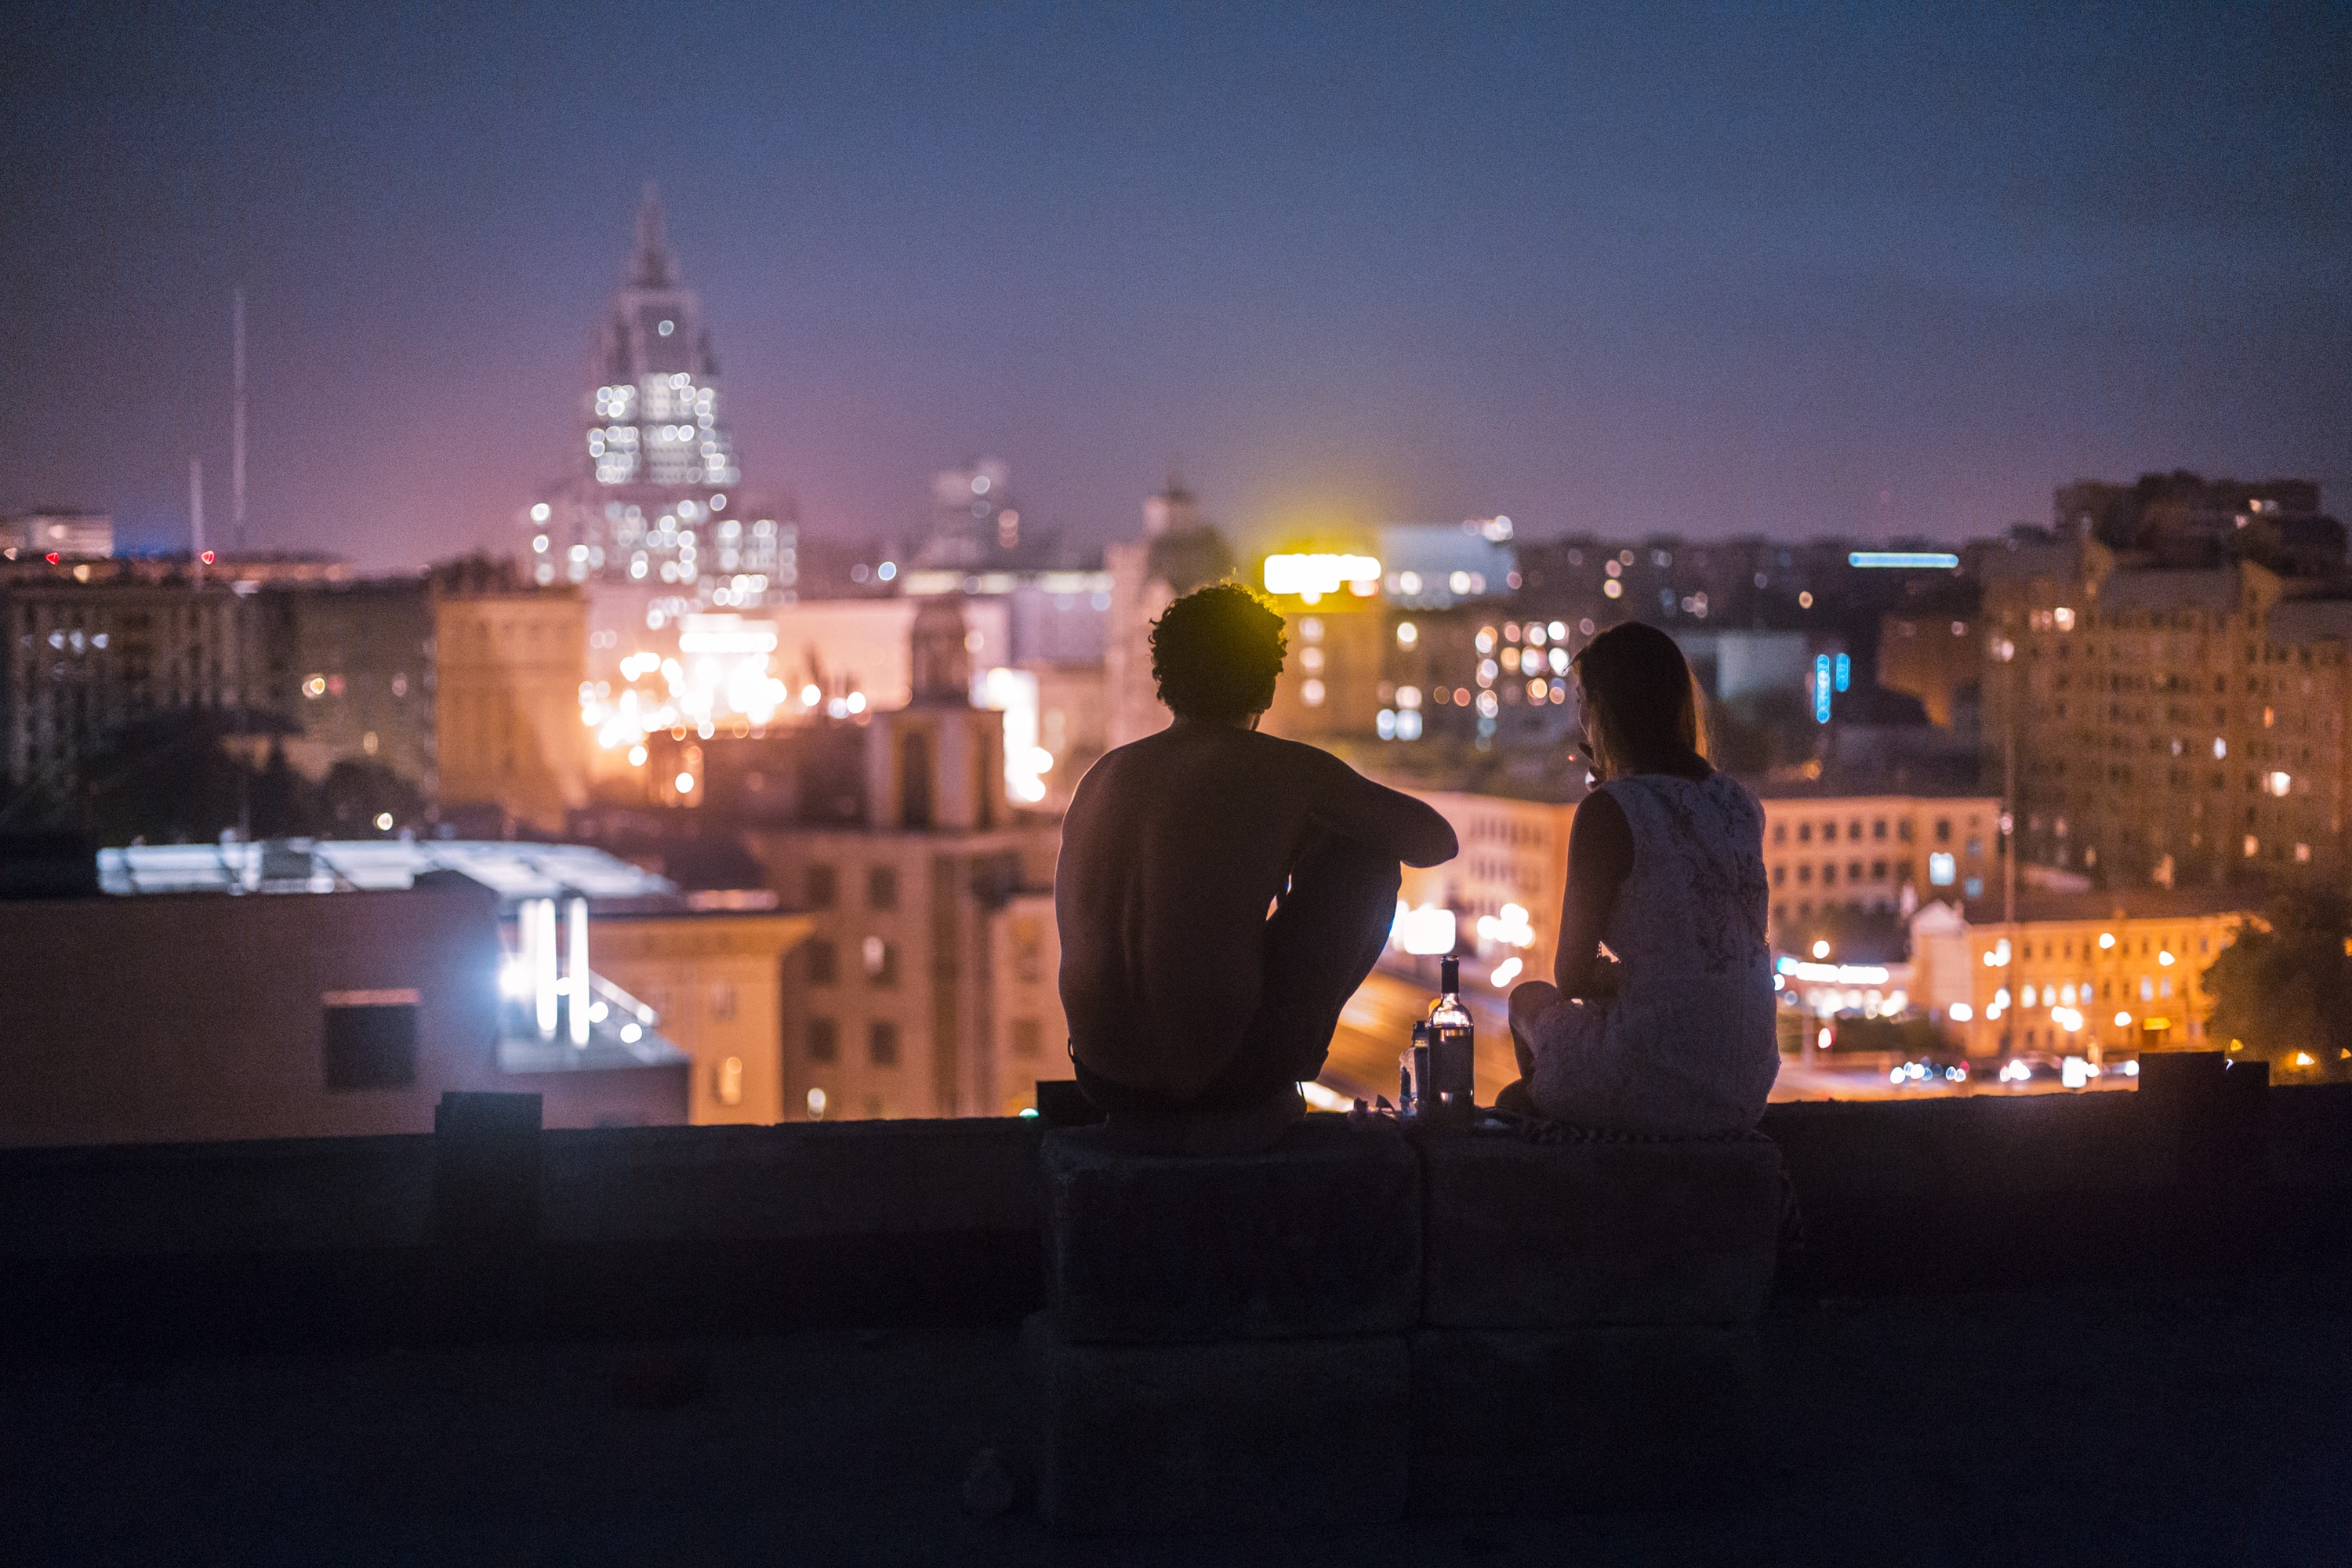 man and woman chilling on rooftop in front of high-rise buildings